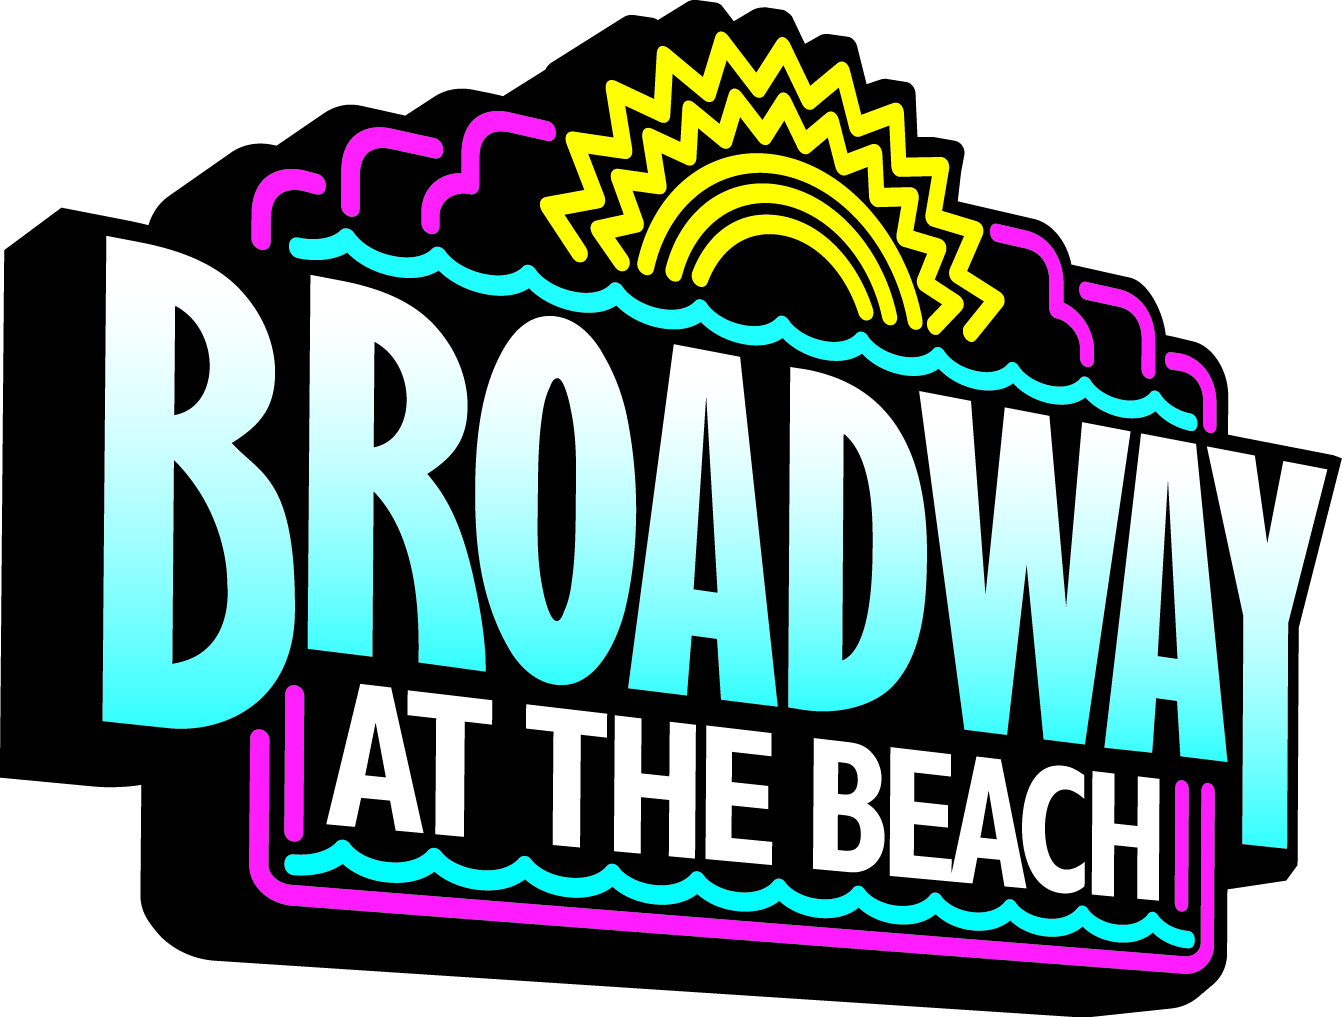 Broadway at the Beach Fireworks Schedule.